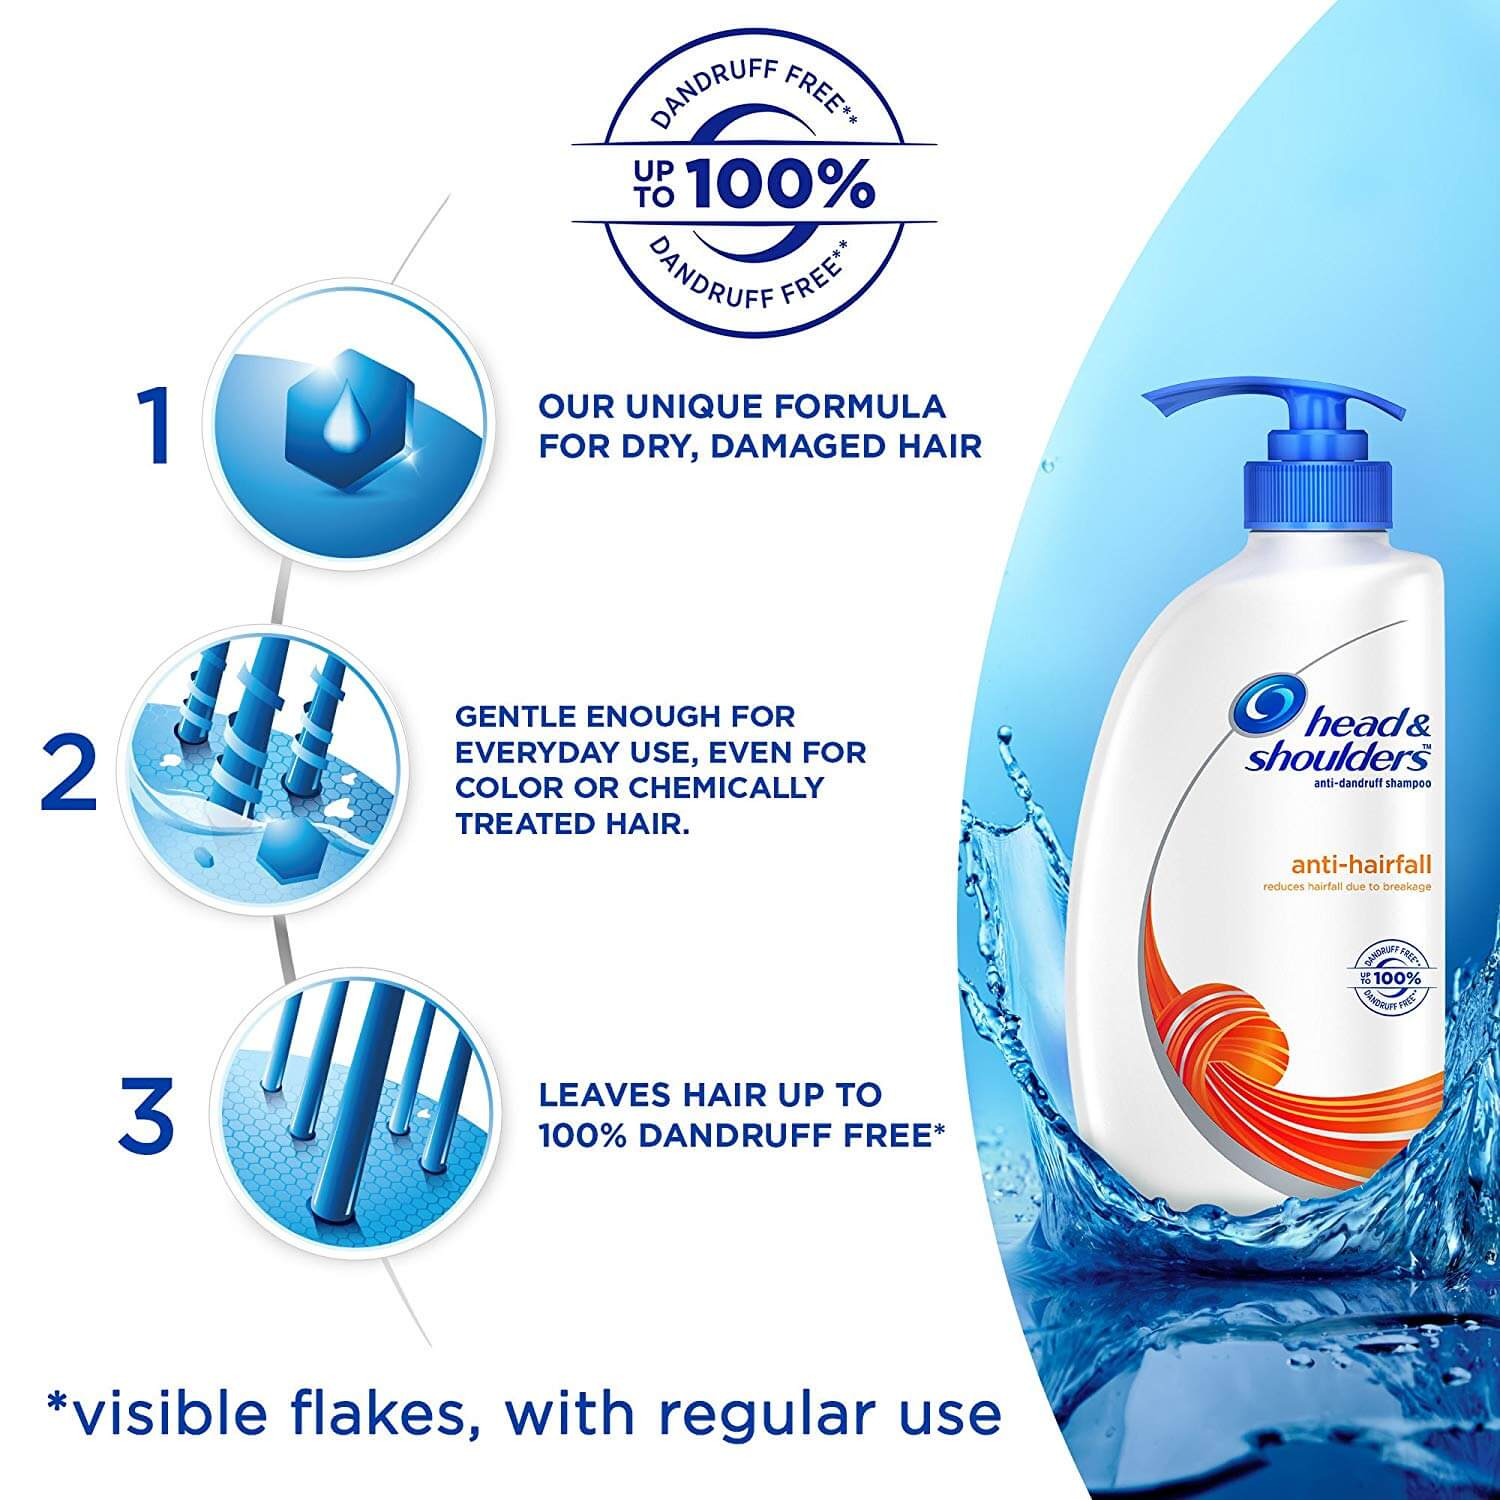 Indograce Emart Head Shoulders Anti Hair Fall Shampoo 750ml Pantene Sampo Hairfall Control Buy Building Construction Materials Household Items Supplies Online